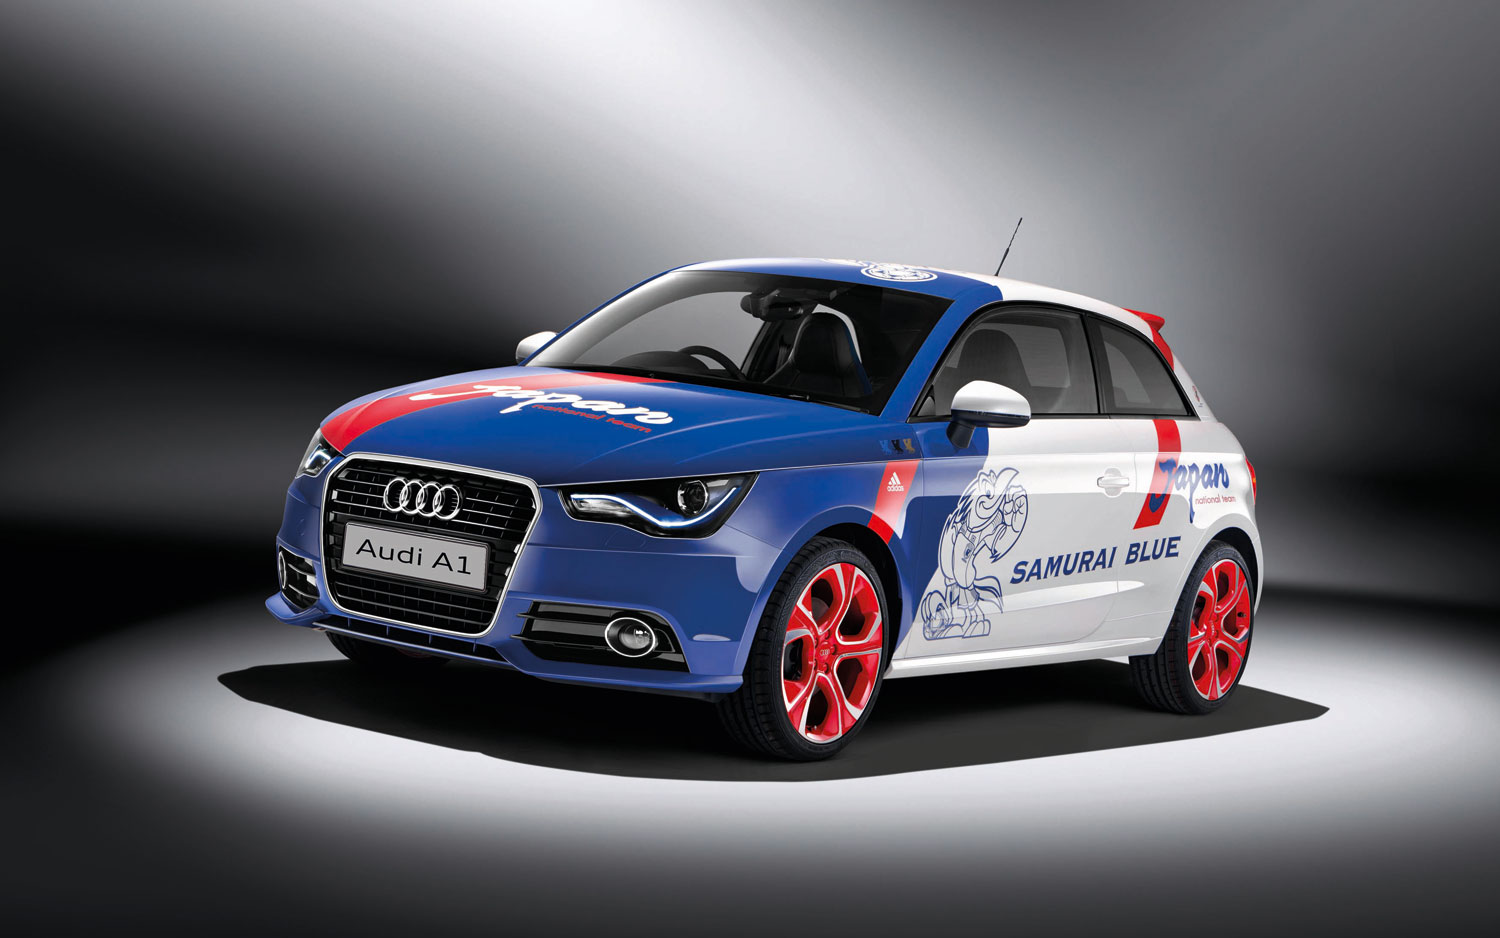 2012 Audi A1 Samurai Blue Front Three Quarter